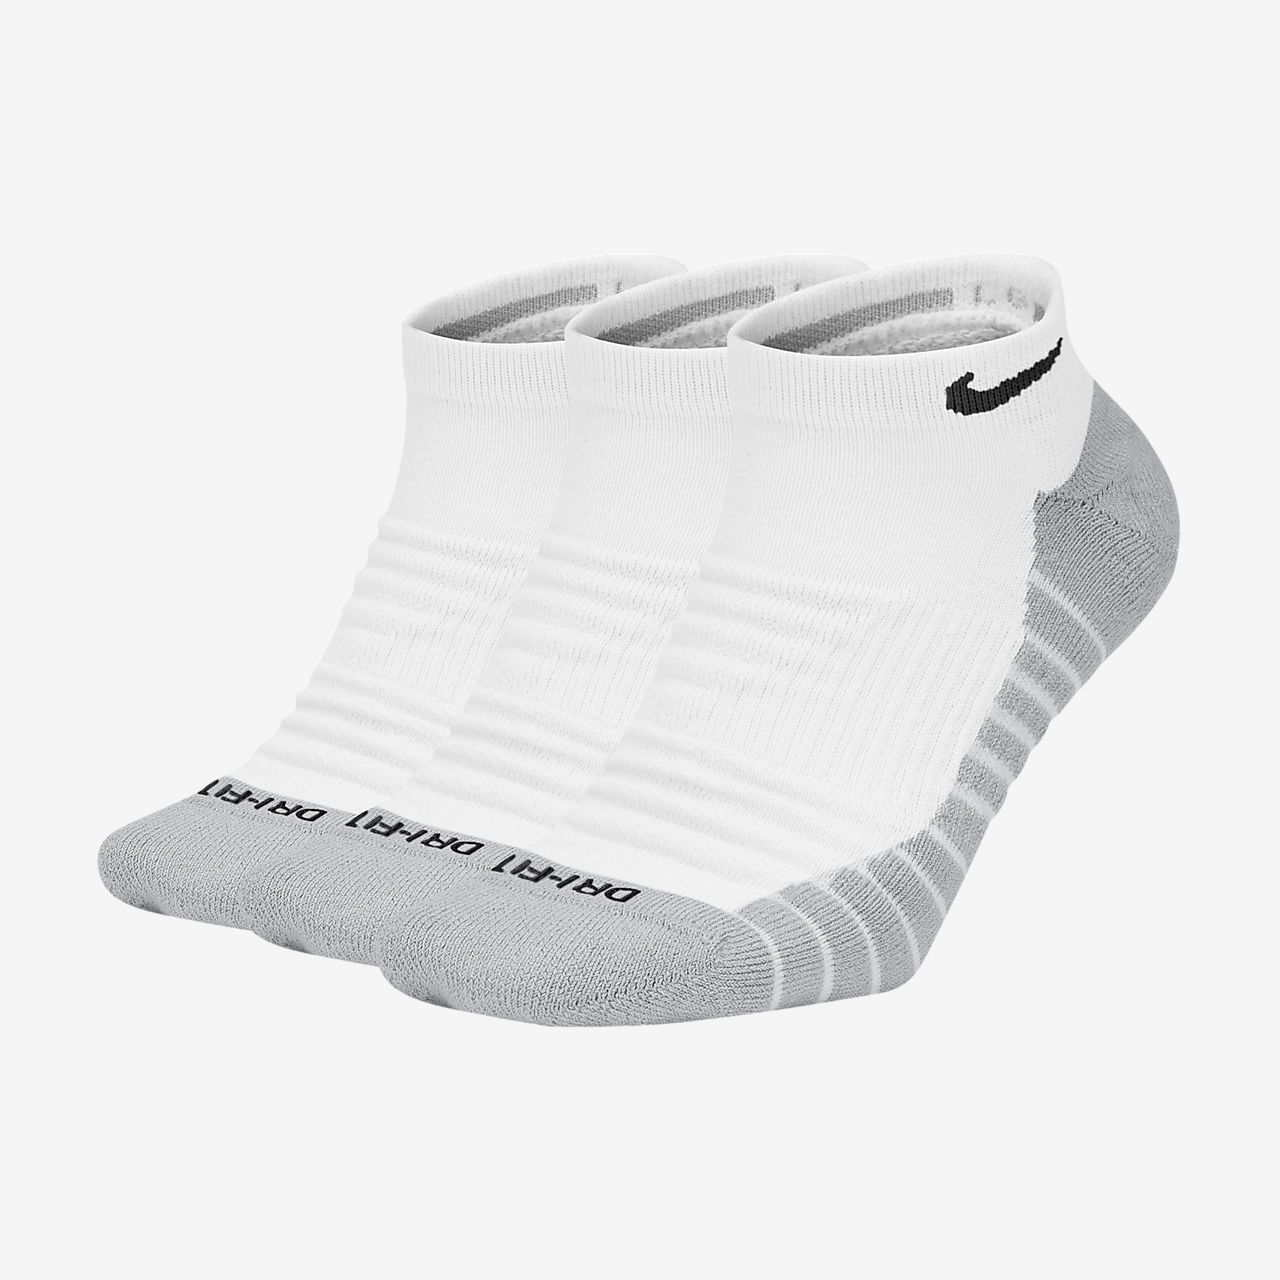 Chaussettes de training Nike Dry Cushion No-Show (3 paires)